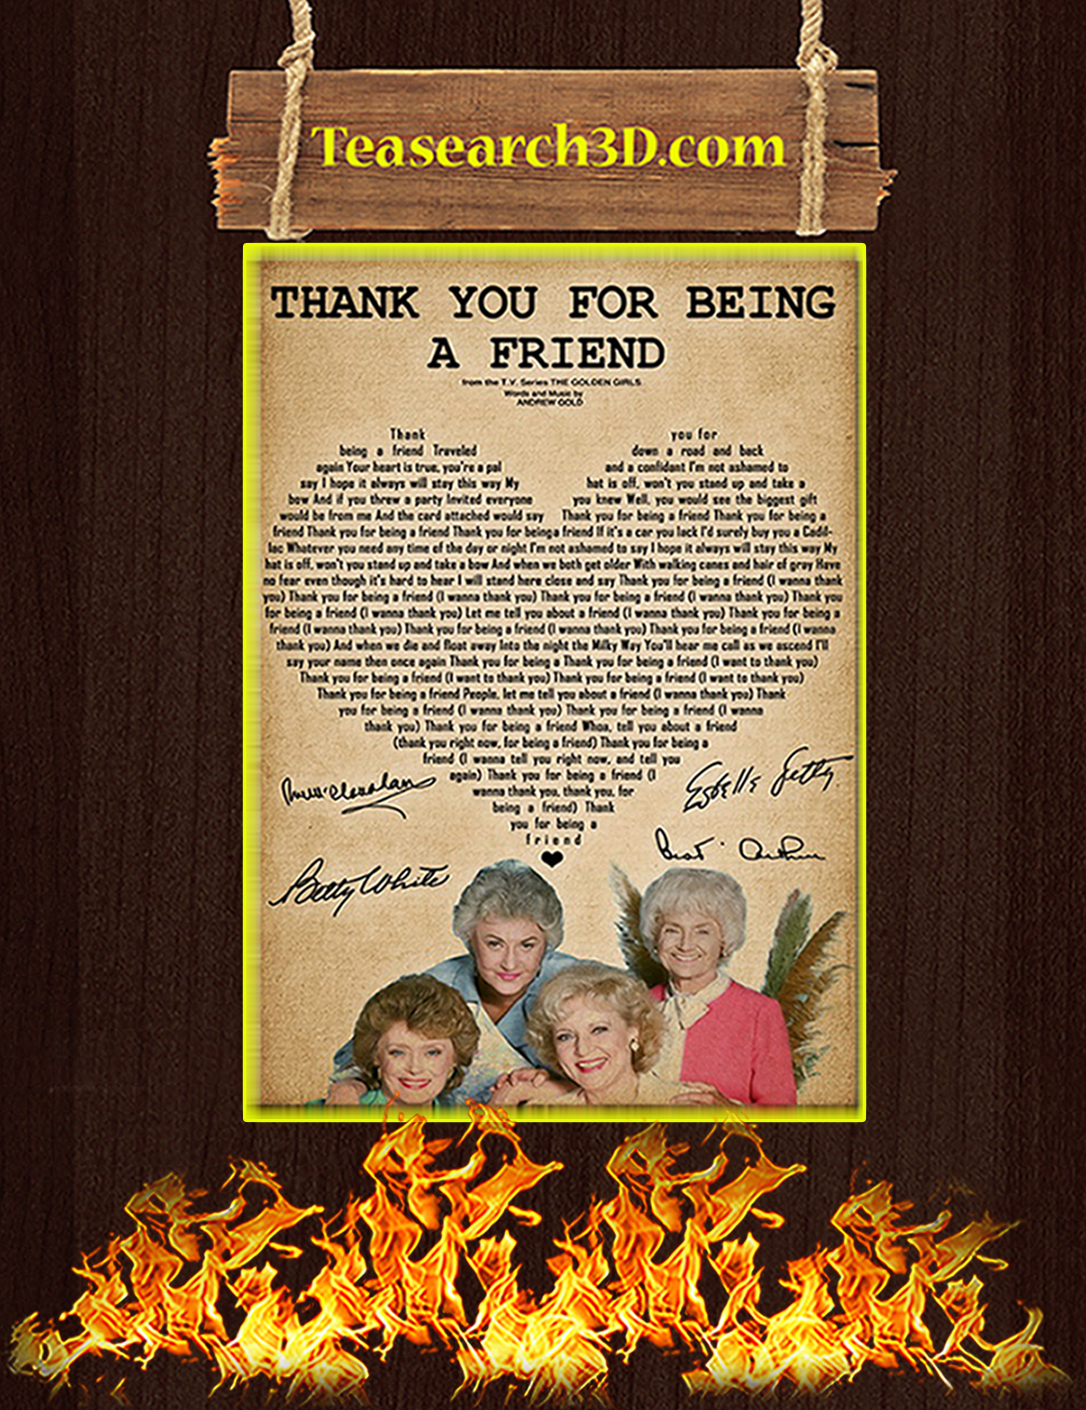 Thank you for being a friend golden girls poster A2